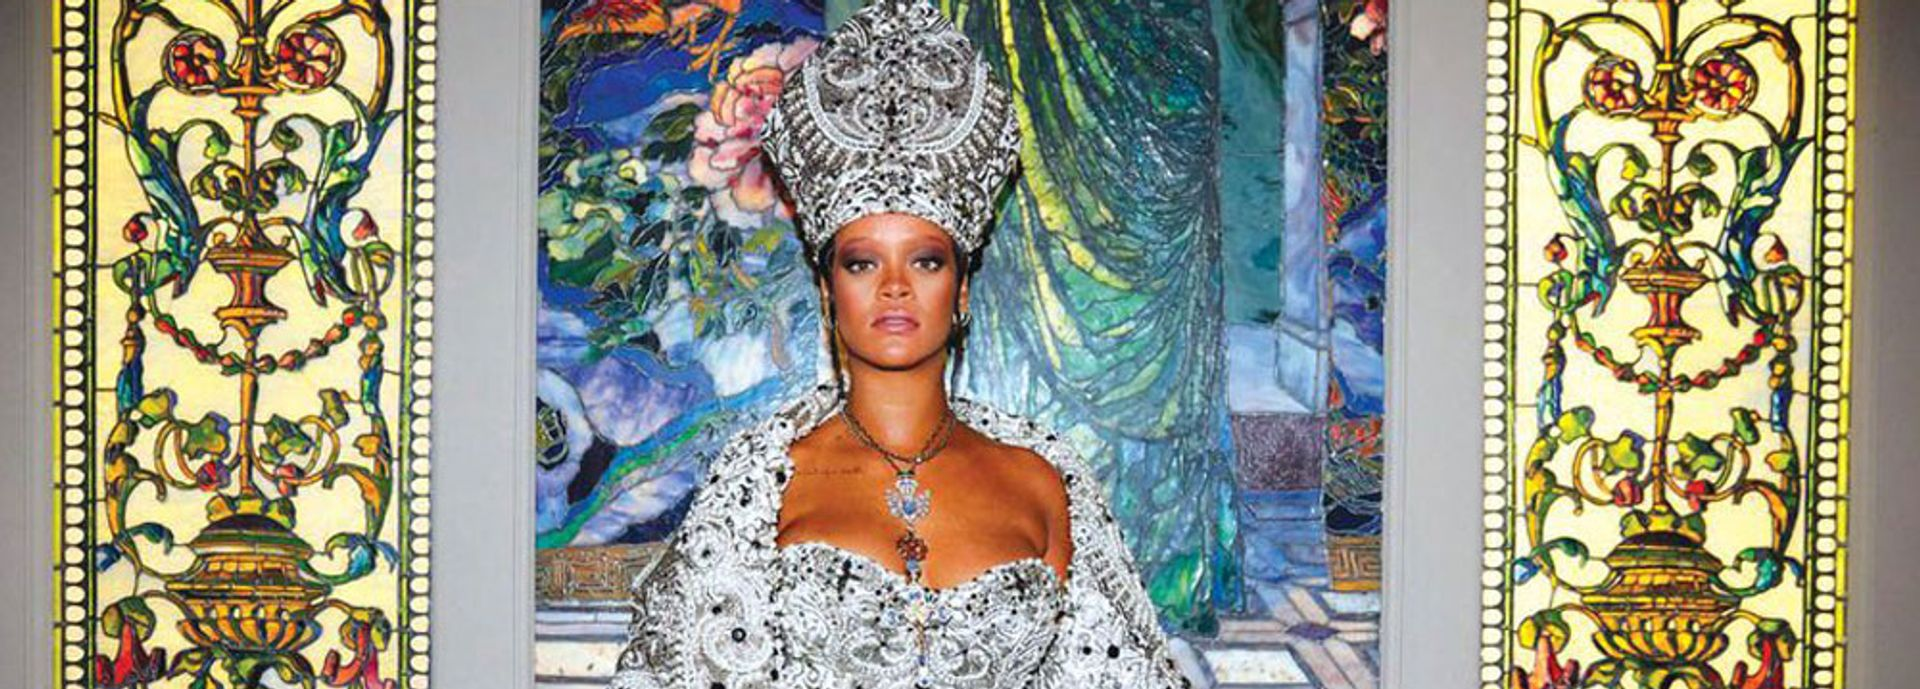 Rihanna attends the Heavenly Bodies: Fashion and the Catholic Imagination Costume Institute Gala at The Metropolitan Museum of Art © Photo by Taylor Jewell/Getty Images for Vogue